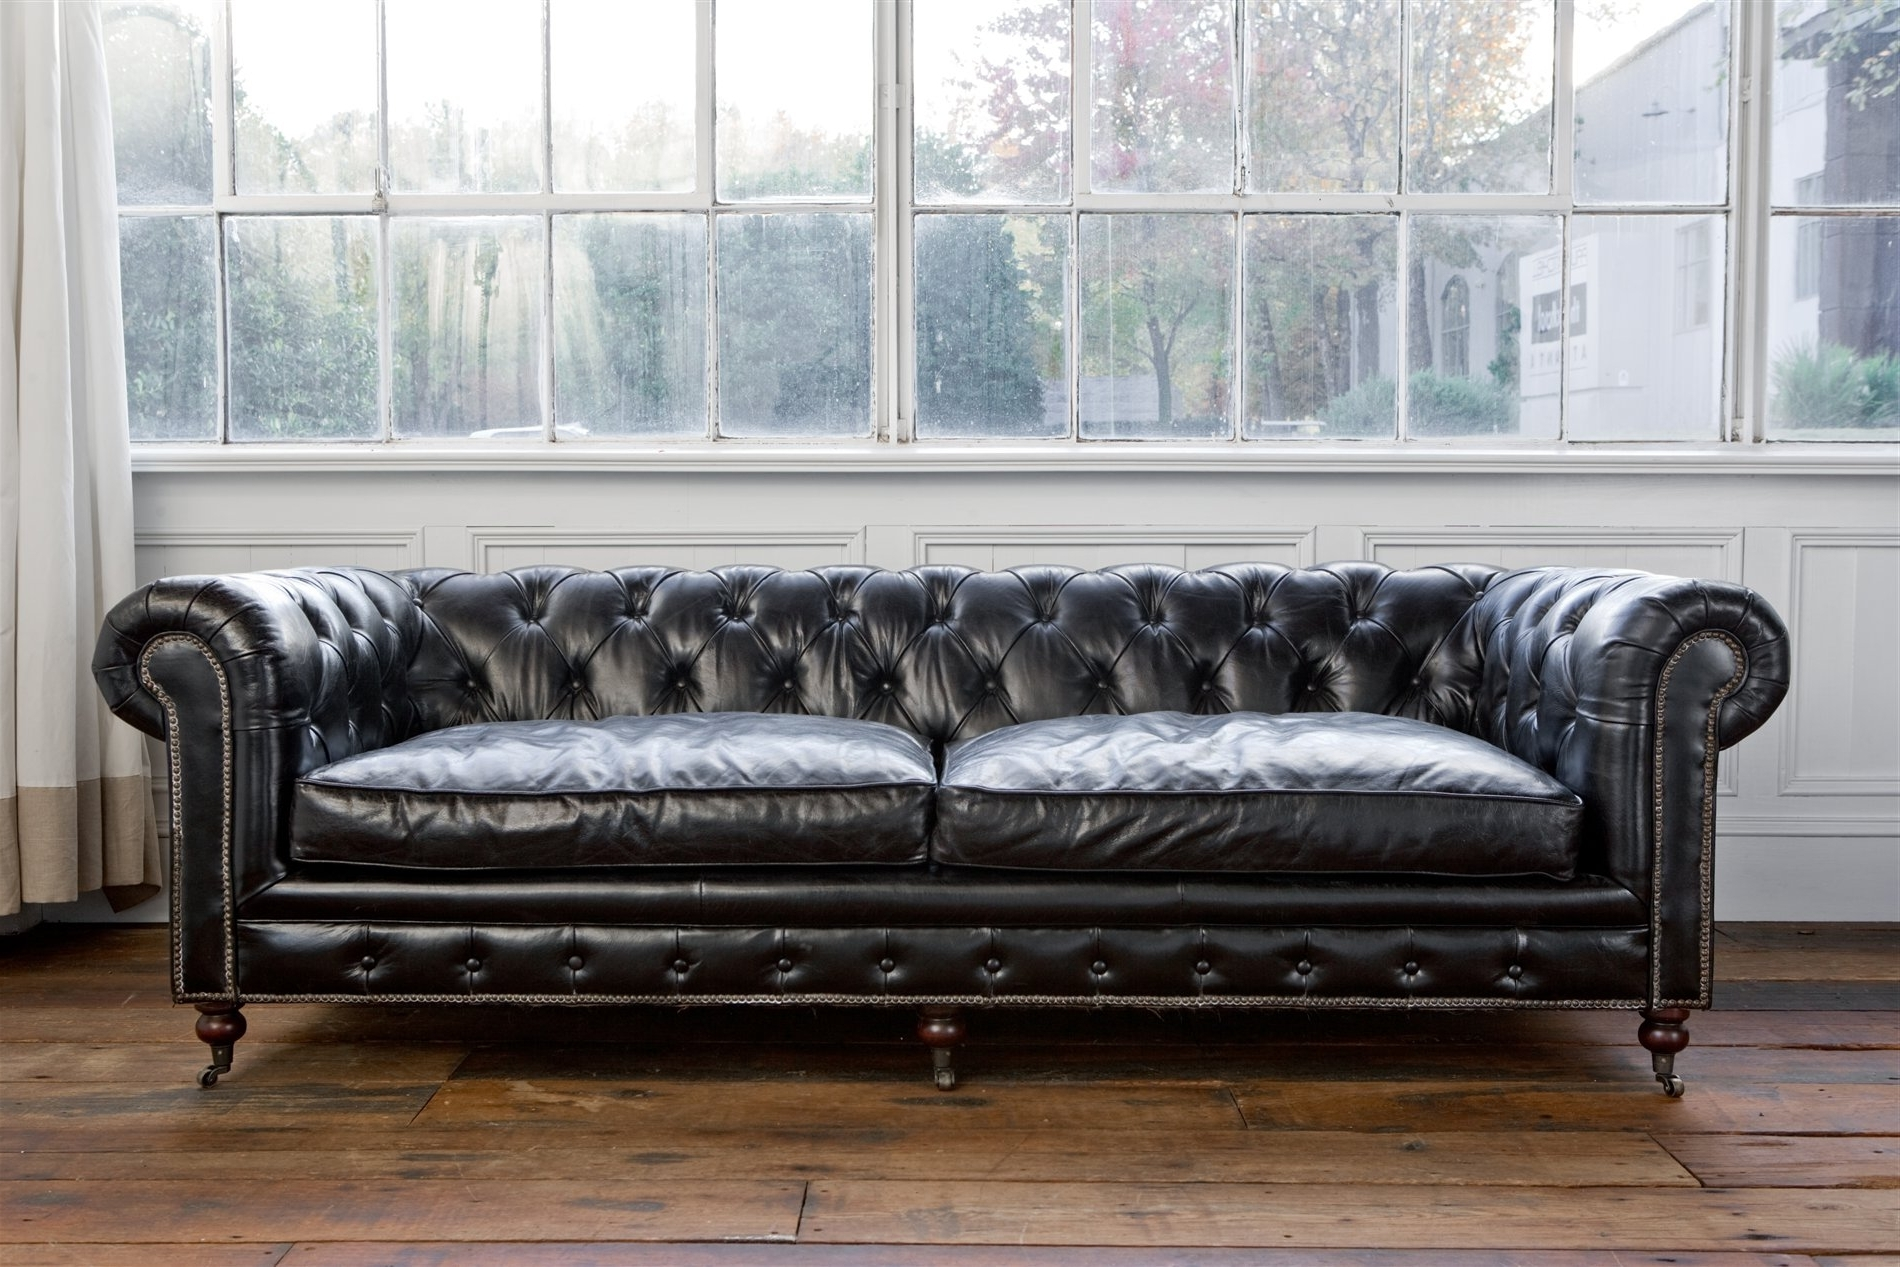 Tufted Leather Chesterfield Sofas With Famous Regina Andrew Design 4 164Vbk Extra Deep Blk Chesterfield Sofa Med (View 4 of 15)